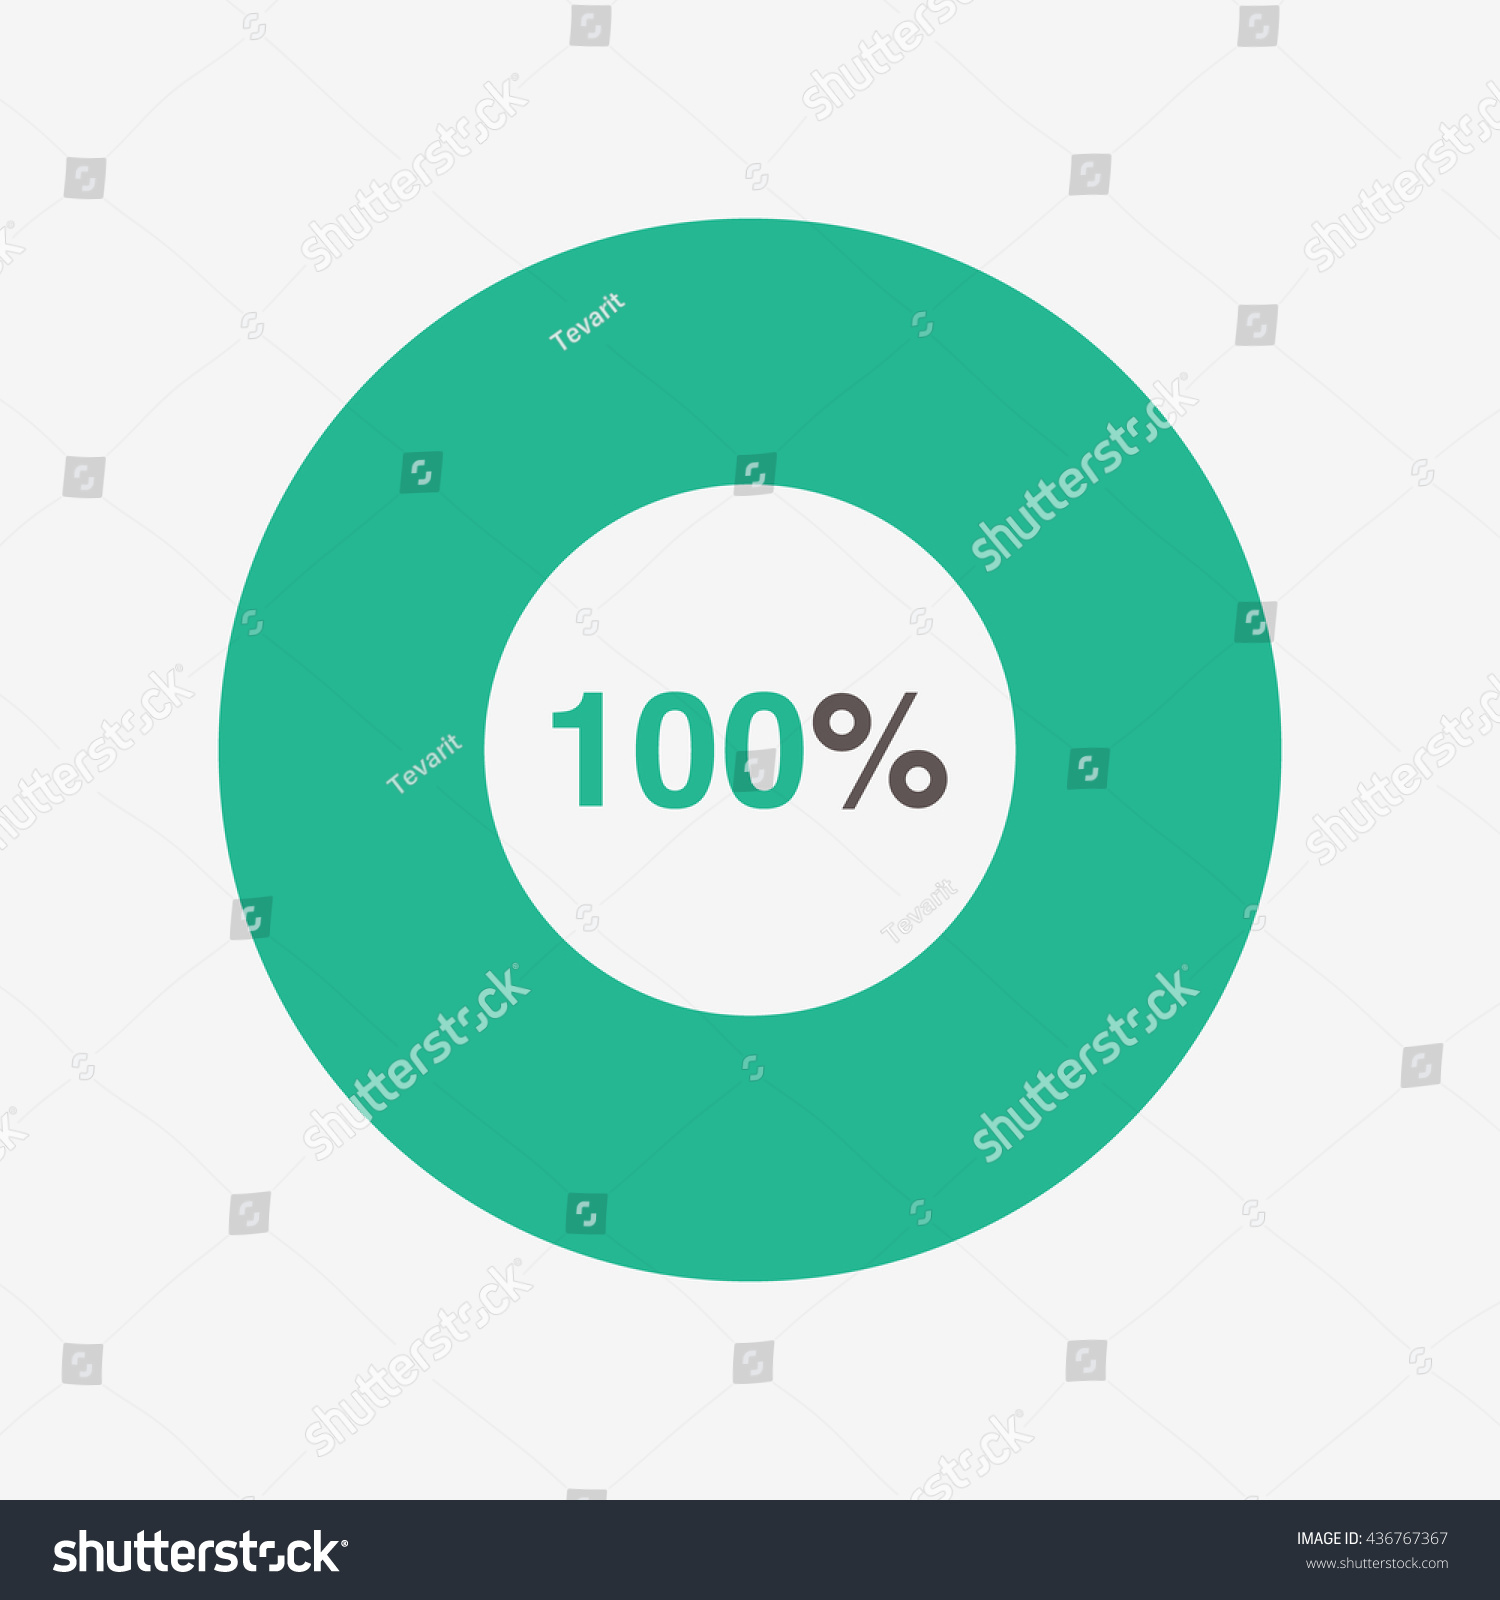 Icon pie green black chart 100 stock vector 436767367 shutterstock icon pie green and black chart 100 percent pie chart vector geenschuldenfo Gallery